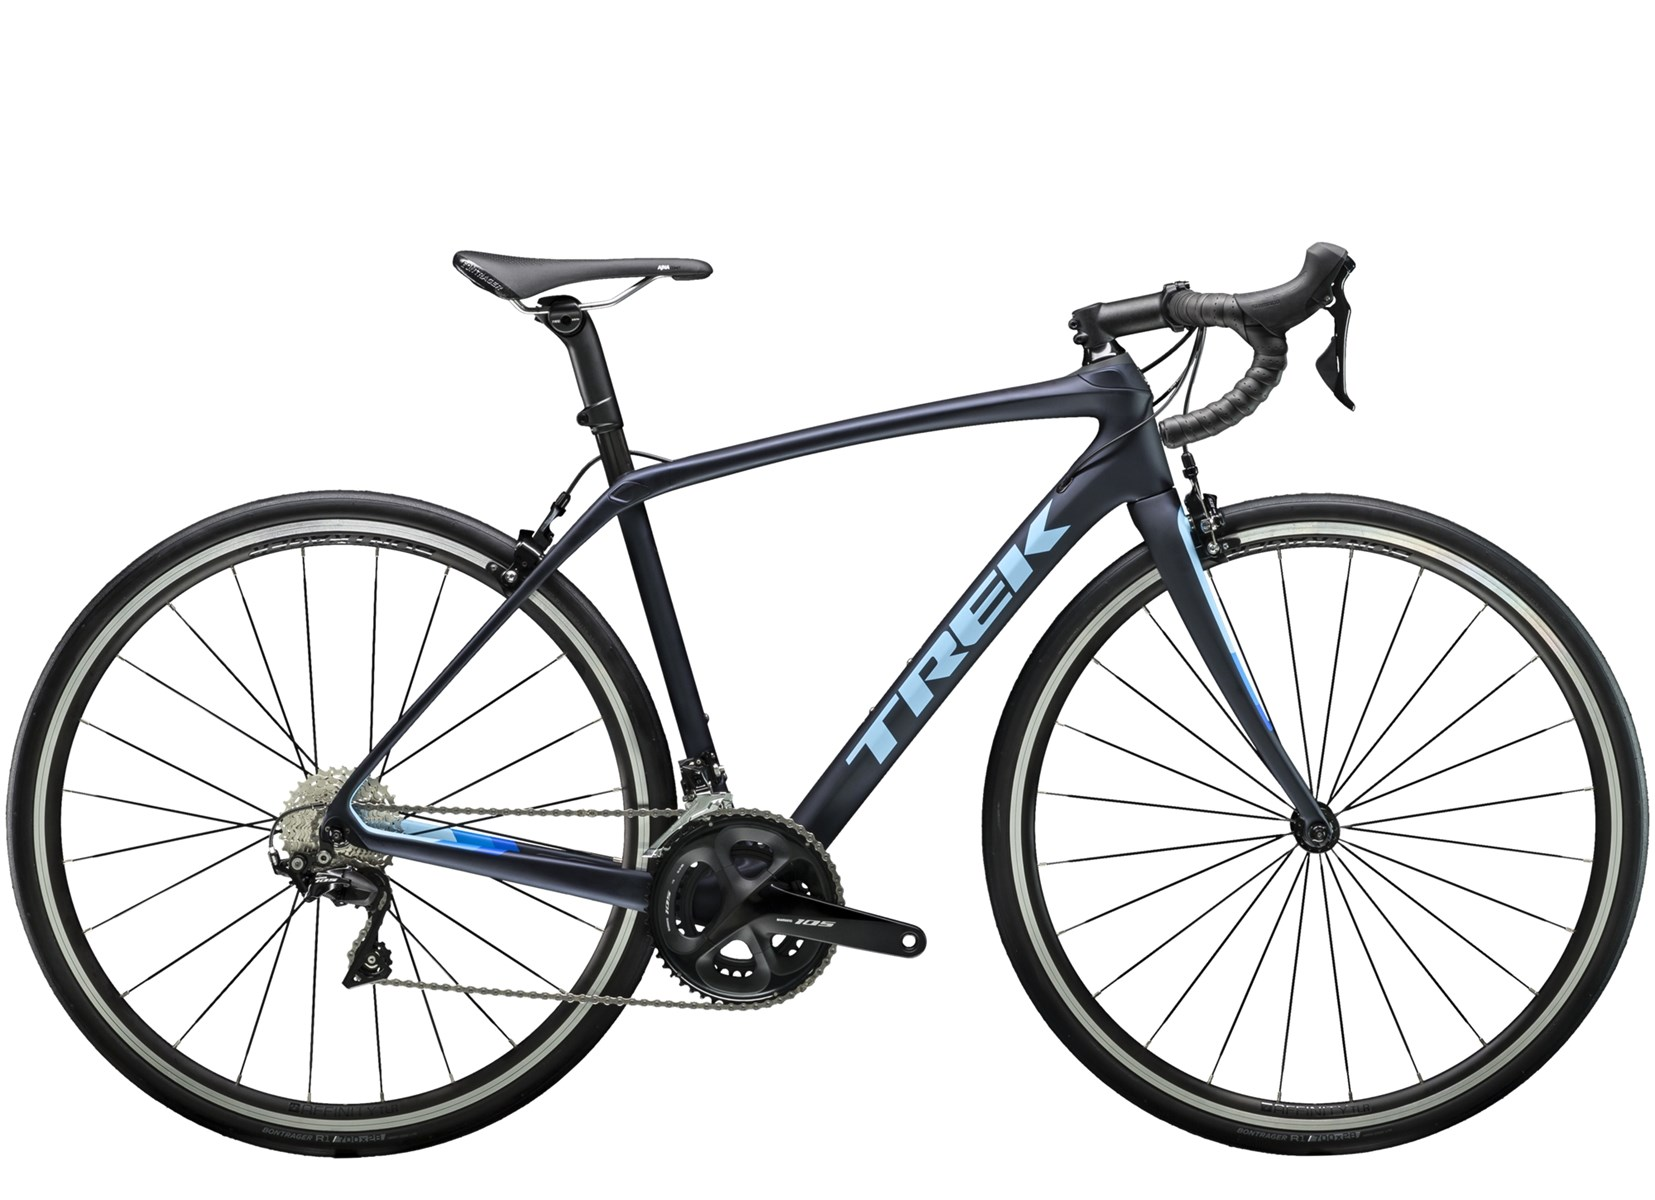 2019 Trek Domane Sl 5 Womens Carbon Road Bike 163 2 000 00